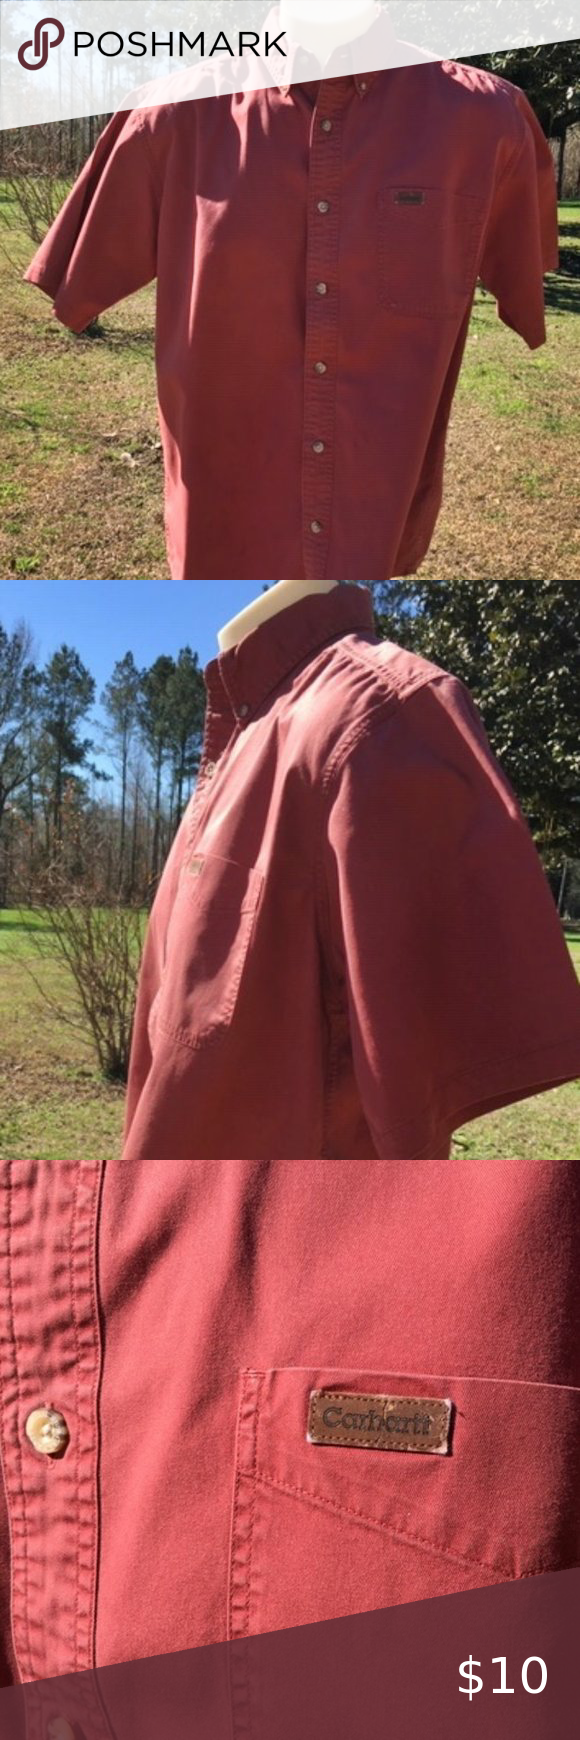 Men's Carhart Button Down Work Shirt Colored Reddish or could call it a Rust Color Pics are pretty spot on though Very Nice Shirt for casual every day or for work No holes No tears No Stains Size Large S/S 100% Cotton Item#0509 Carhartt Shirts Casual Button Down Shirts